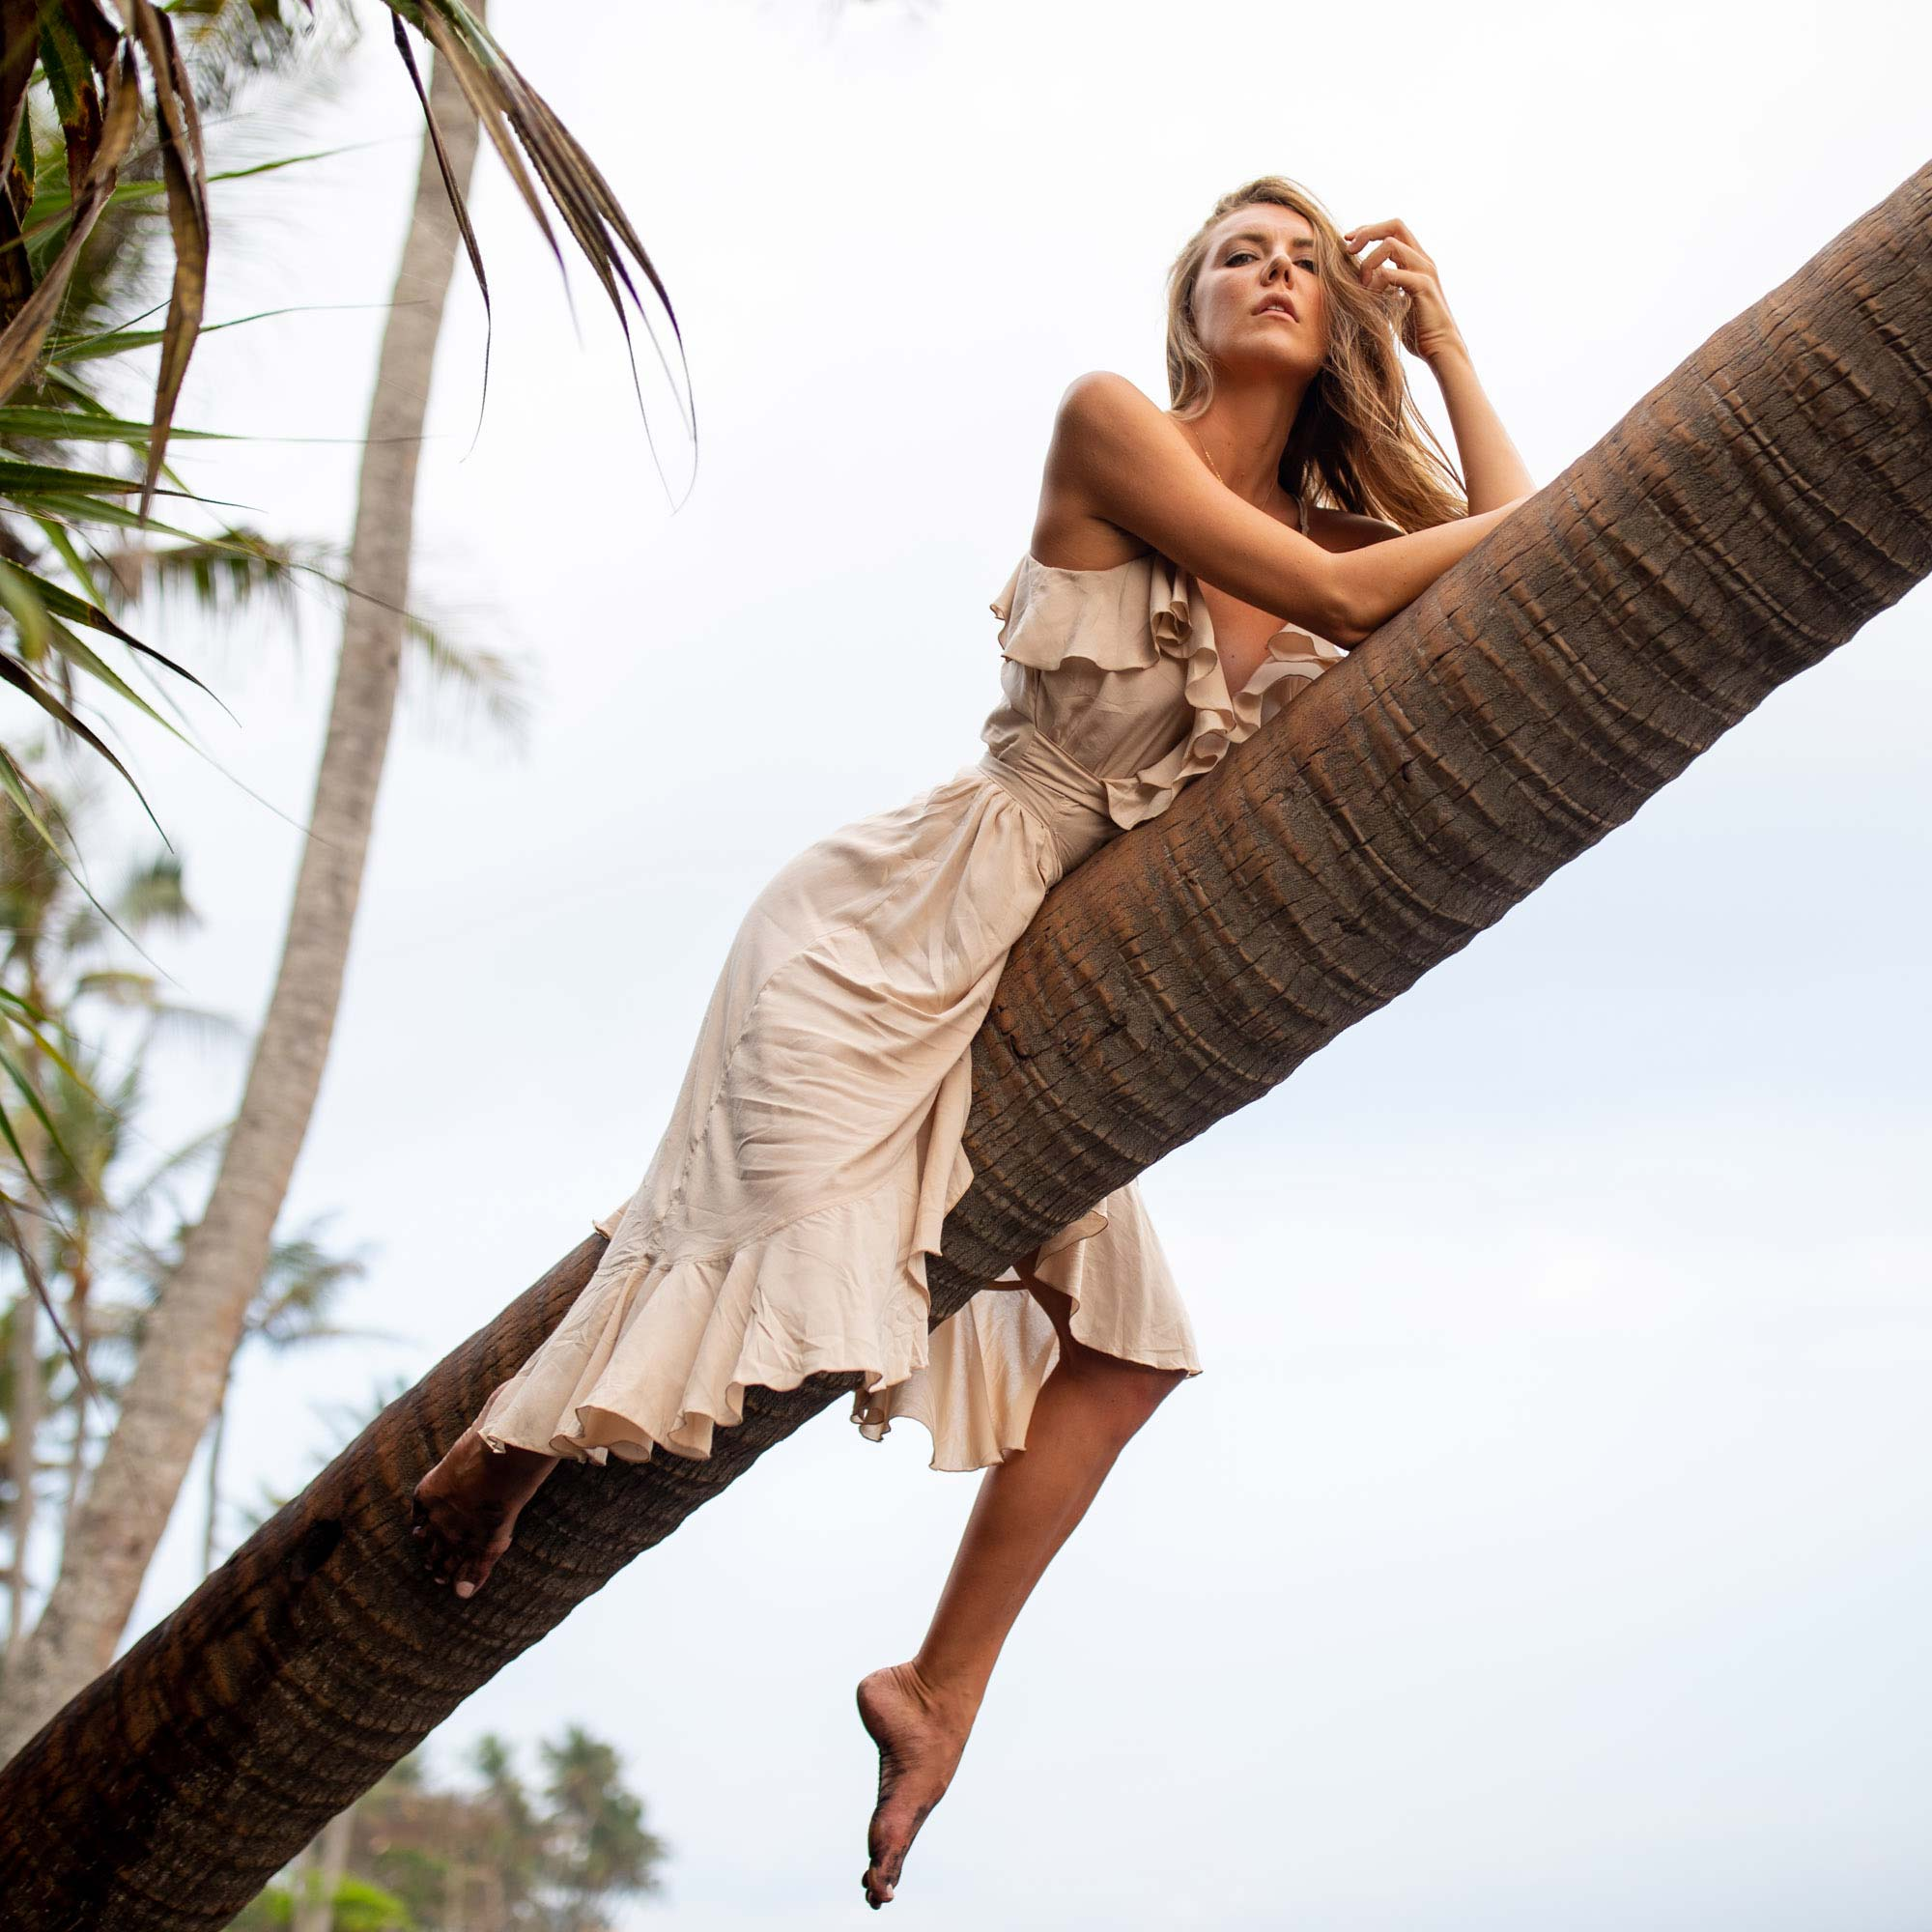 Woman climbs palm tree in flowing dress | Swimwear | Lifestyle Photography | Canggu, Bali, Indonesia